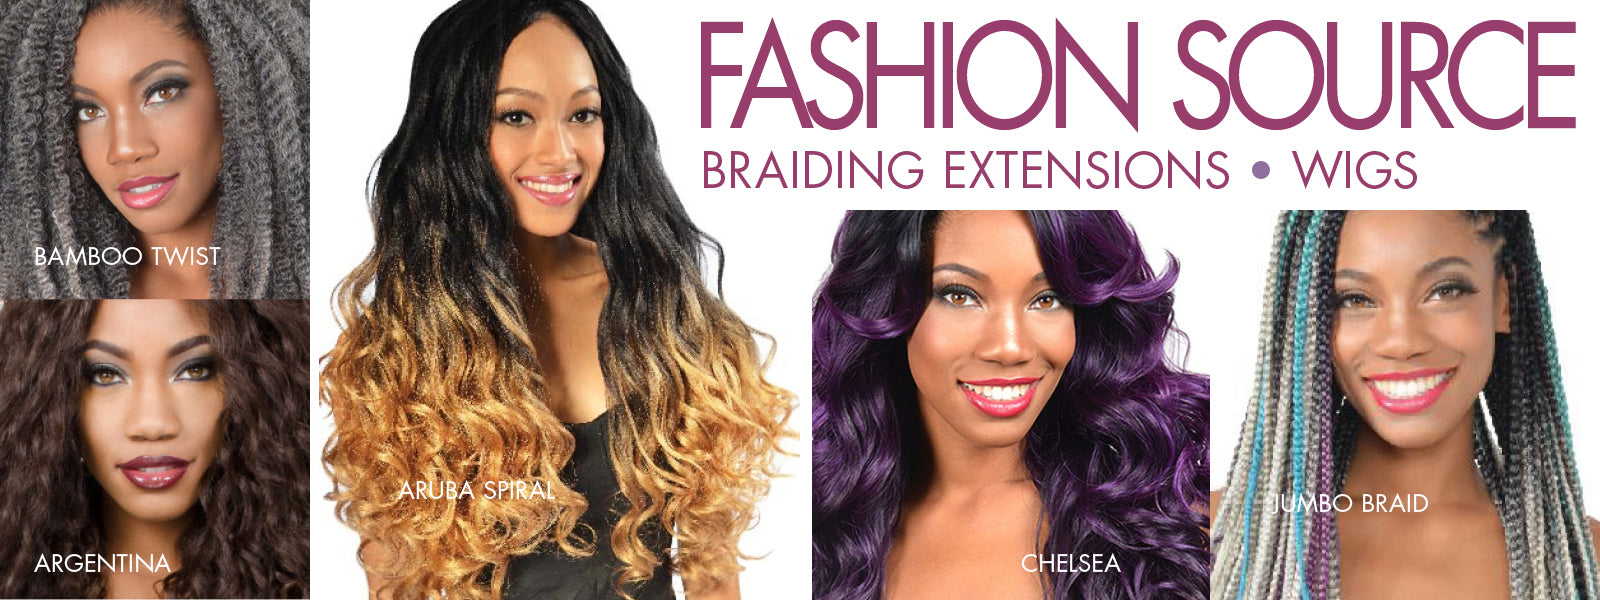 Fashion Source Braiding Extensions and Wigs available at Abantu